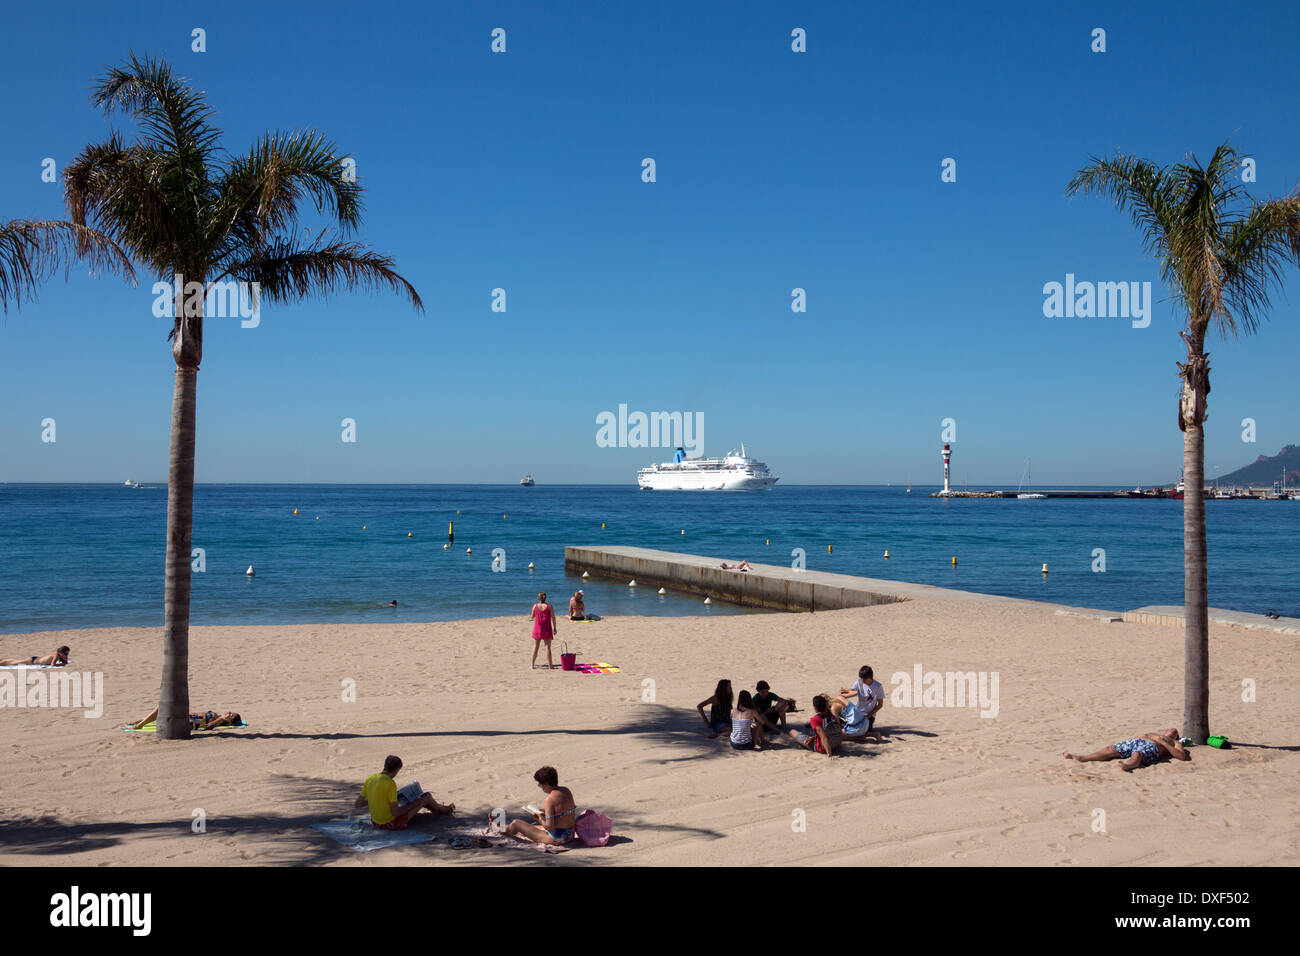 The beach at Cannes on the Cote d'Azur in the South of France. - Stock Image